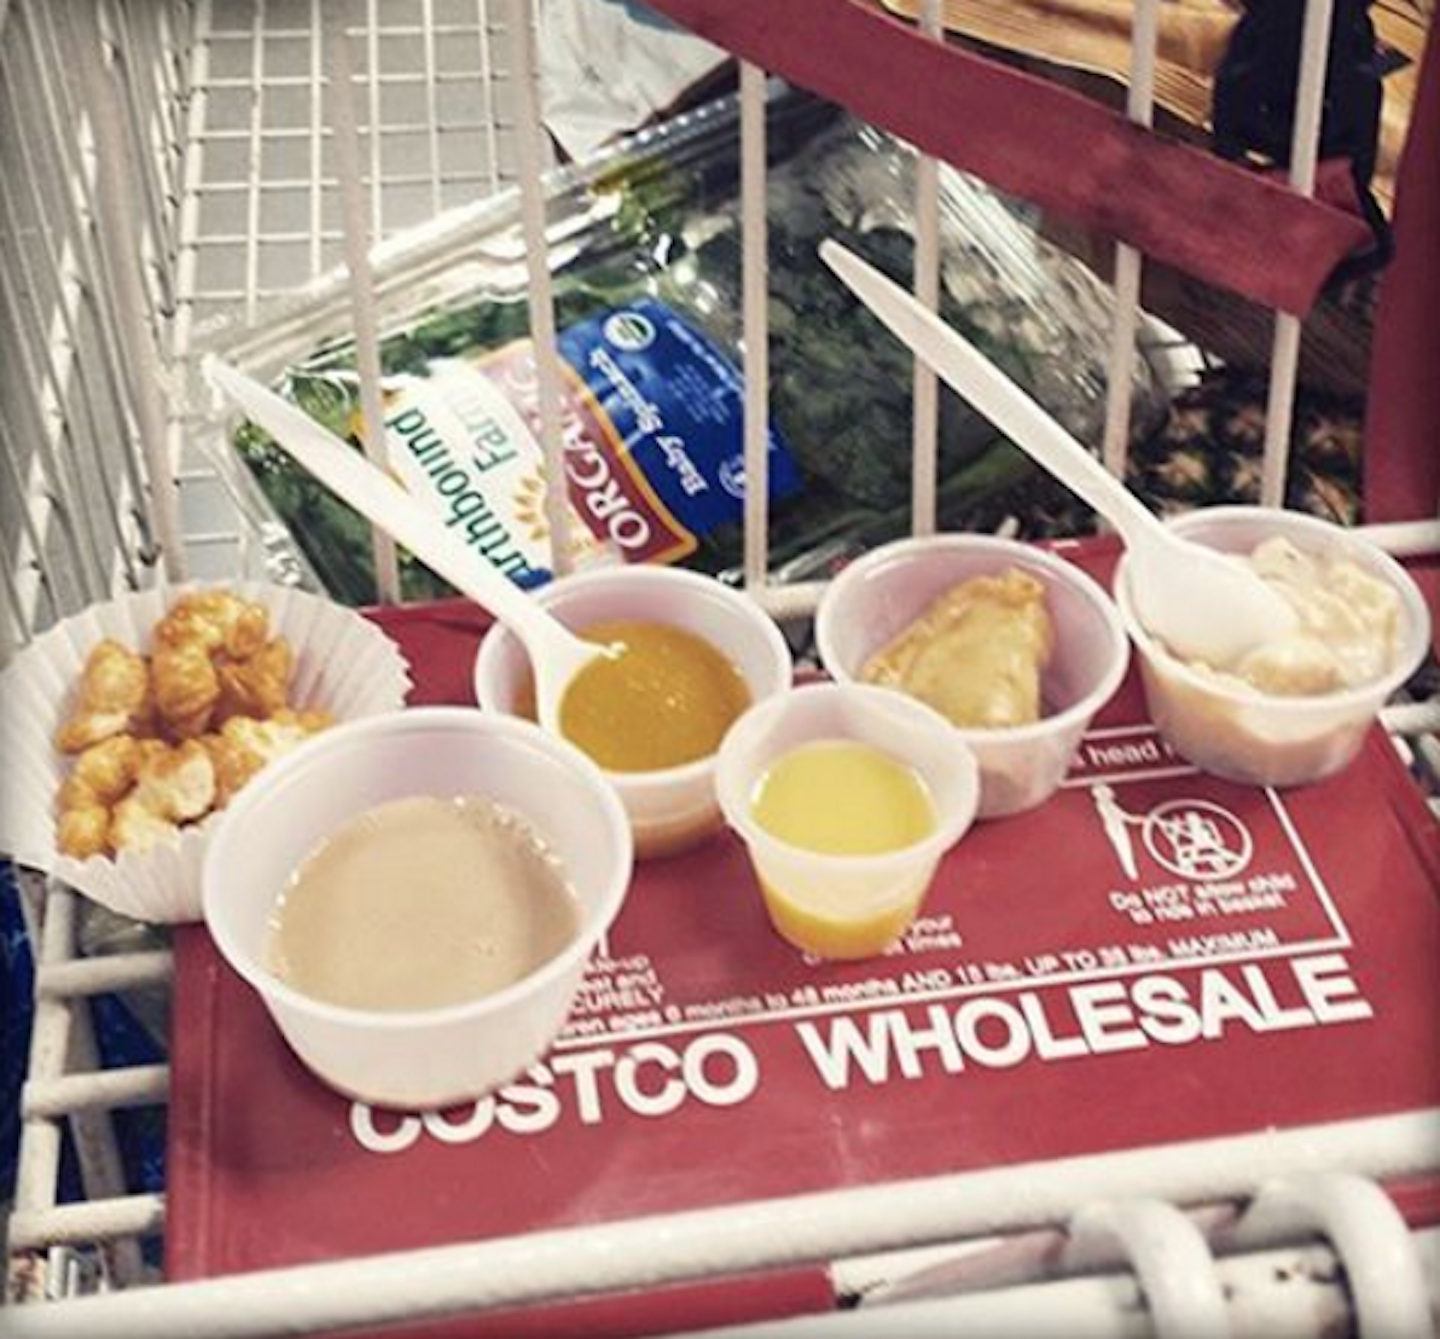 Did you know: There's NO LIMIT to how many Costco samples you can have? TRUTH.